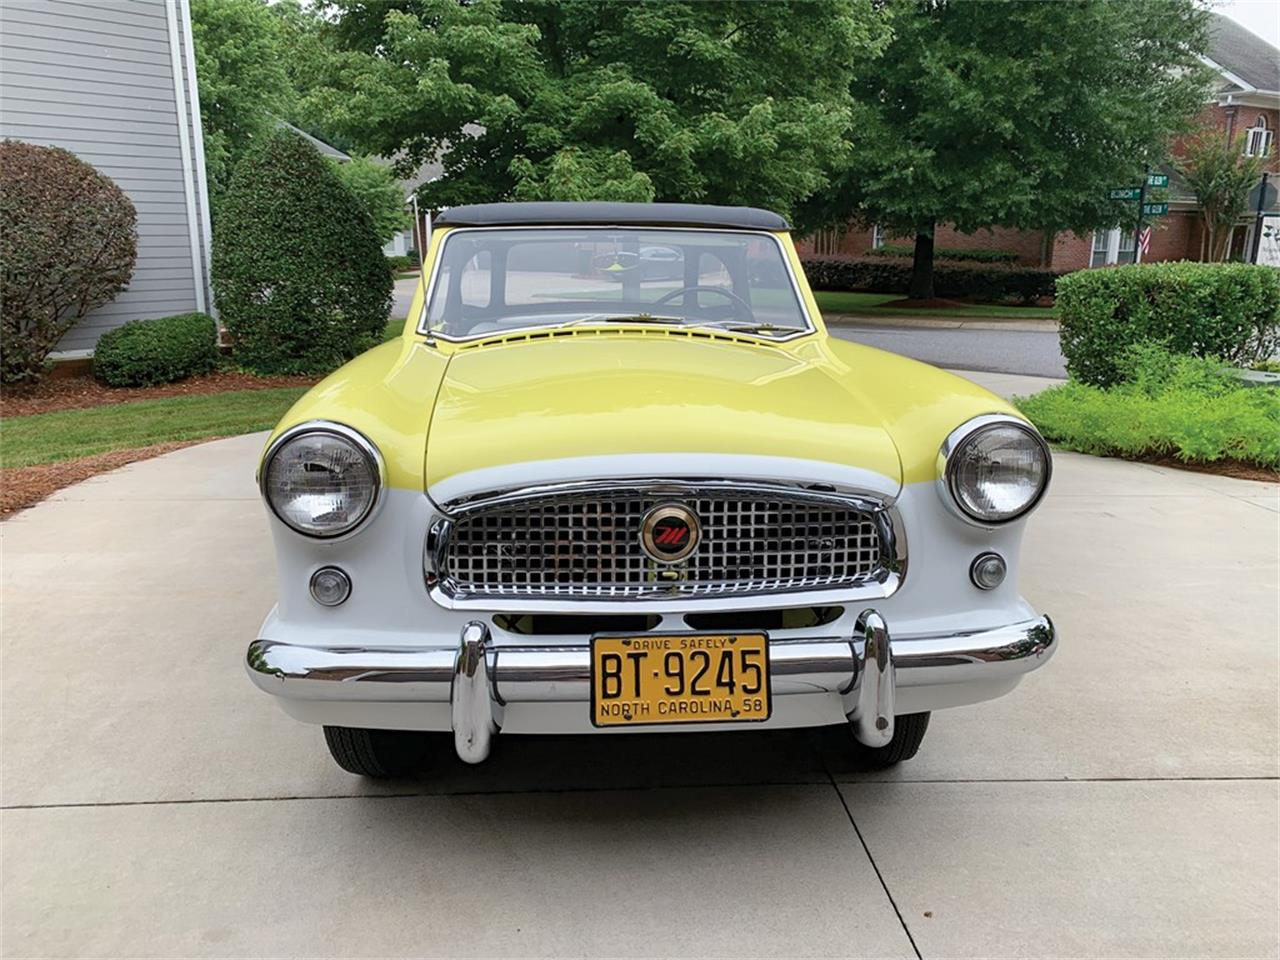 Large Picture of '58 Nash Metropolitan located in Auburn Indiana Auction Vehicle Offered by RM Sotheby's - QDOU